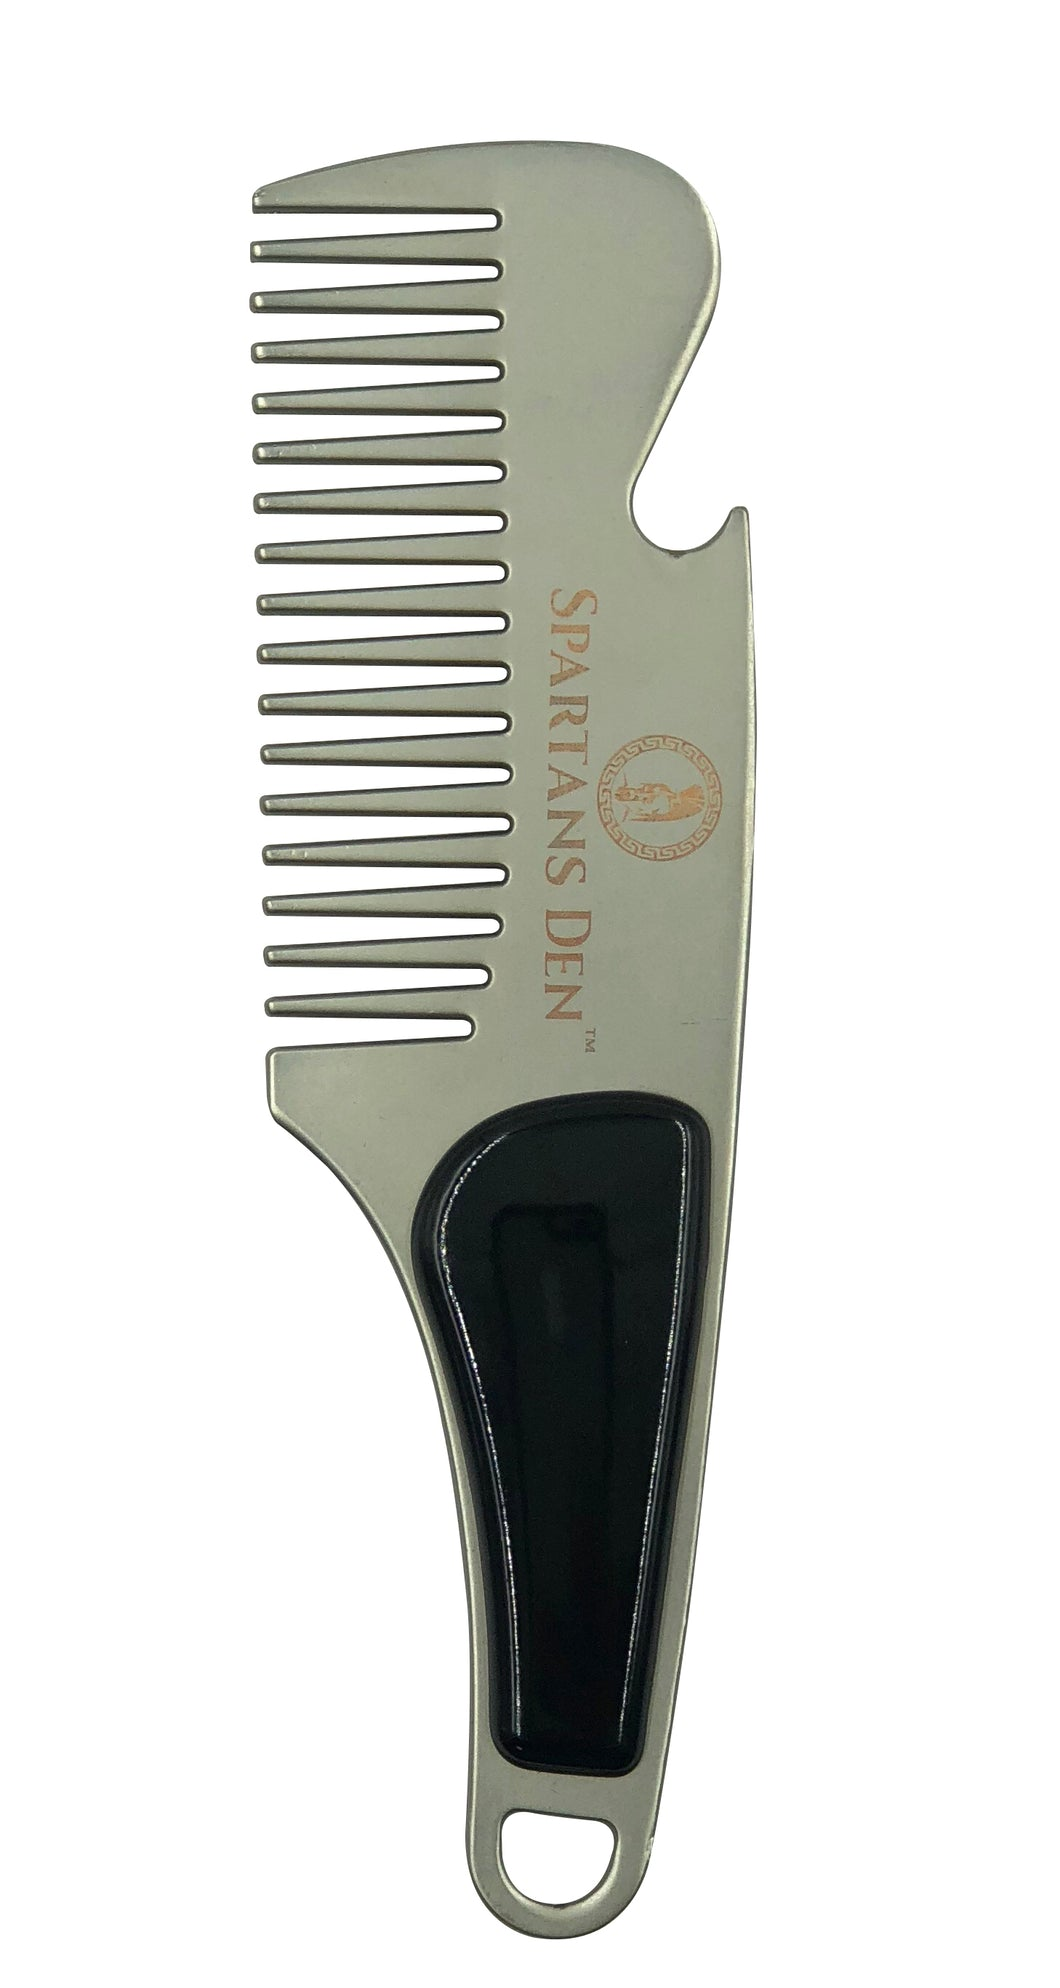 STAINLESS STEEL BEARD COMB - SILVER